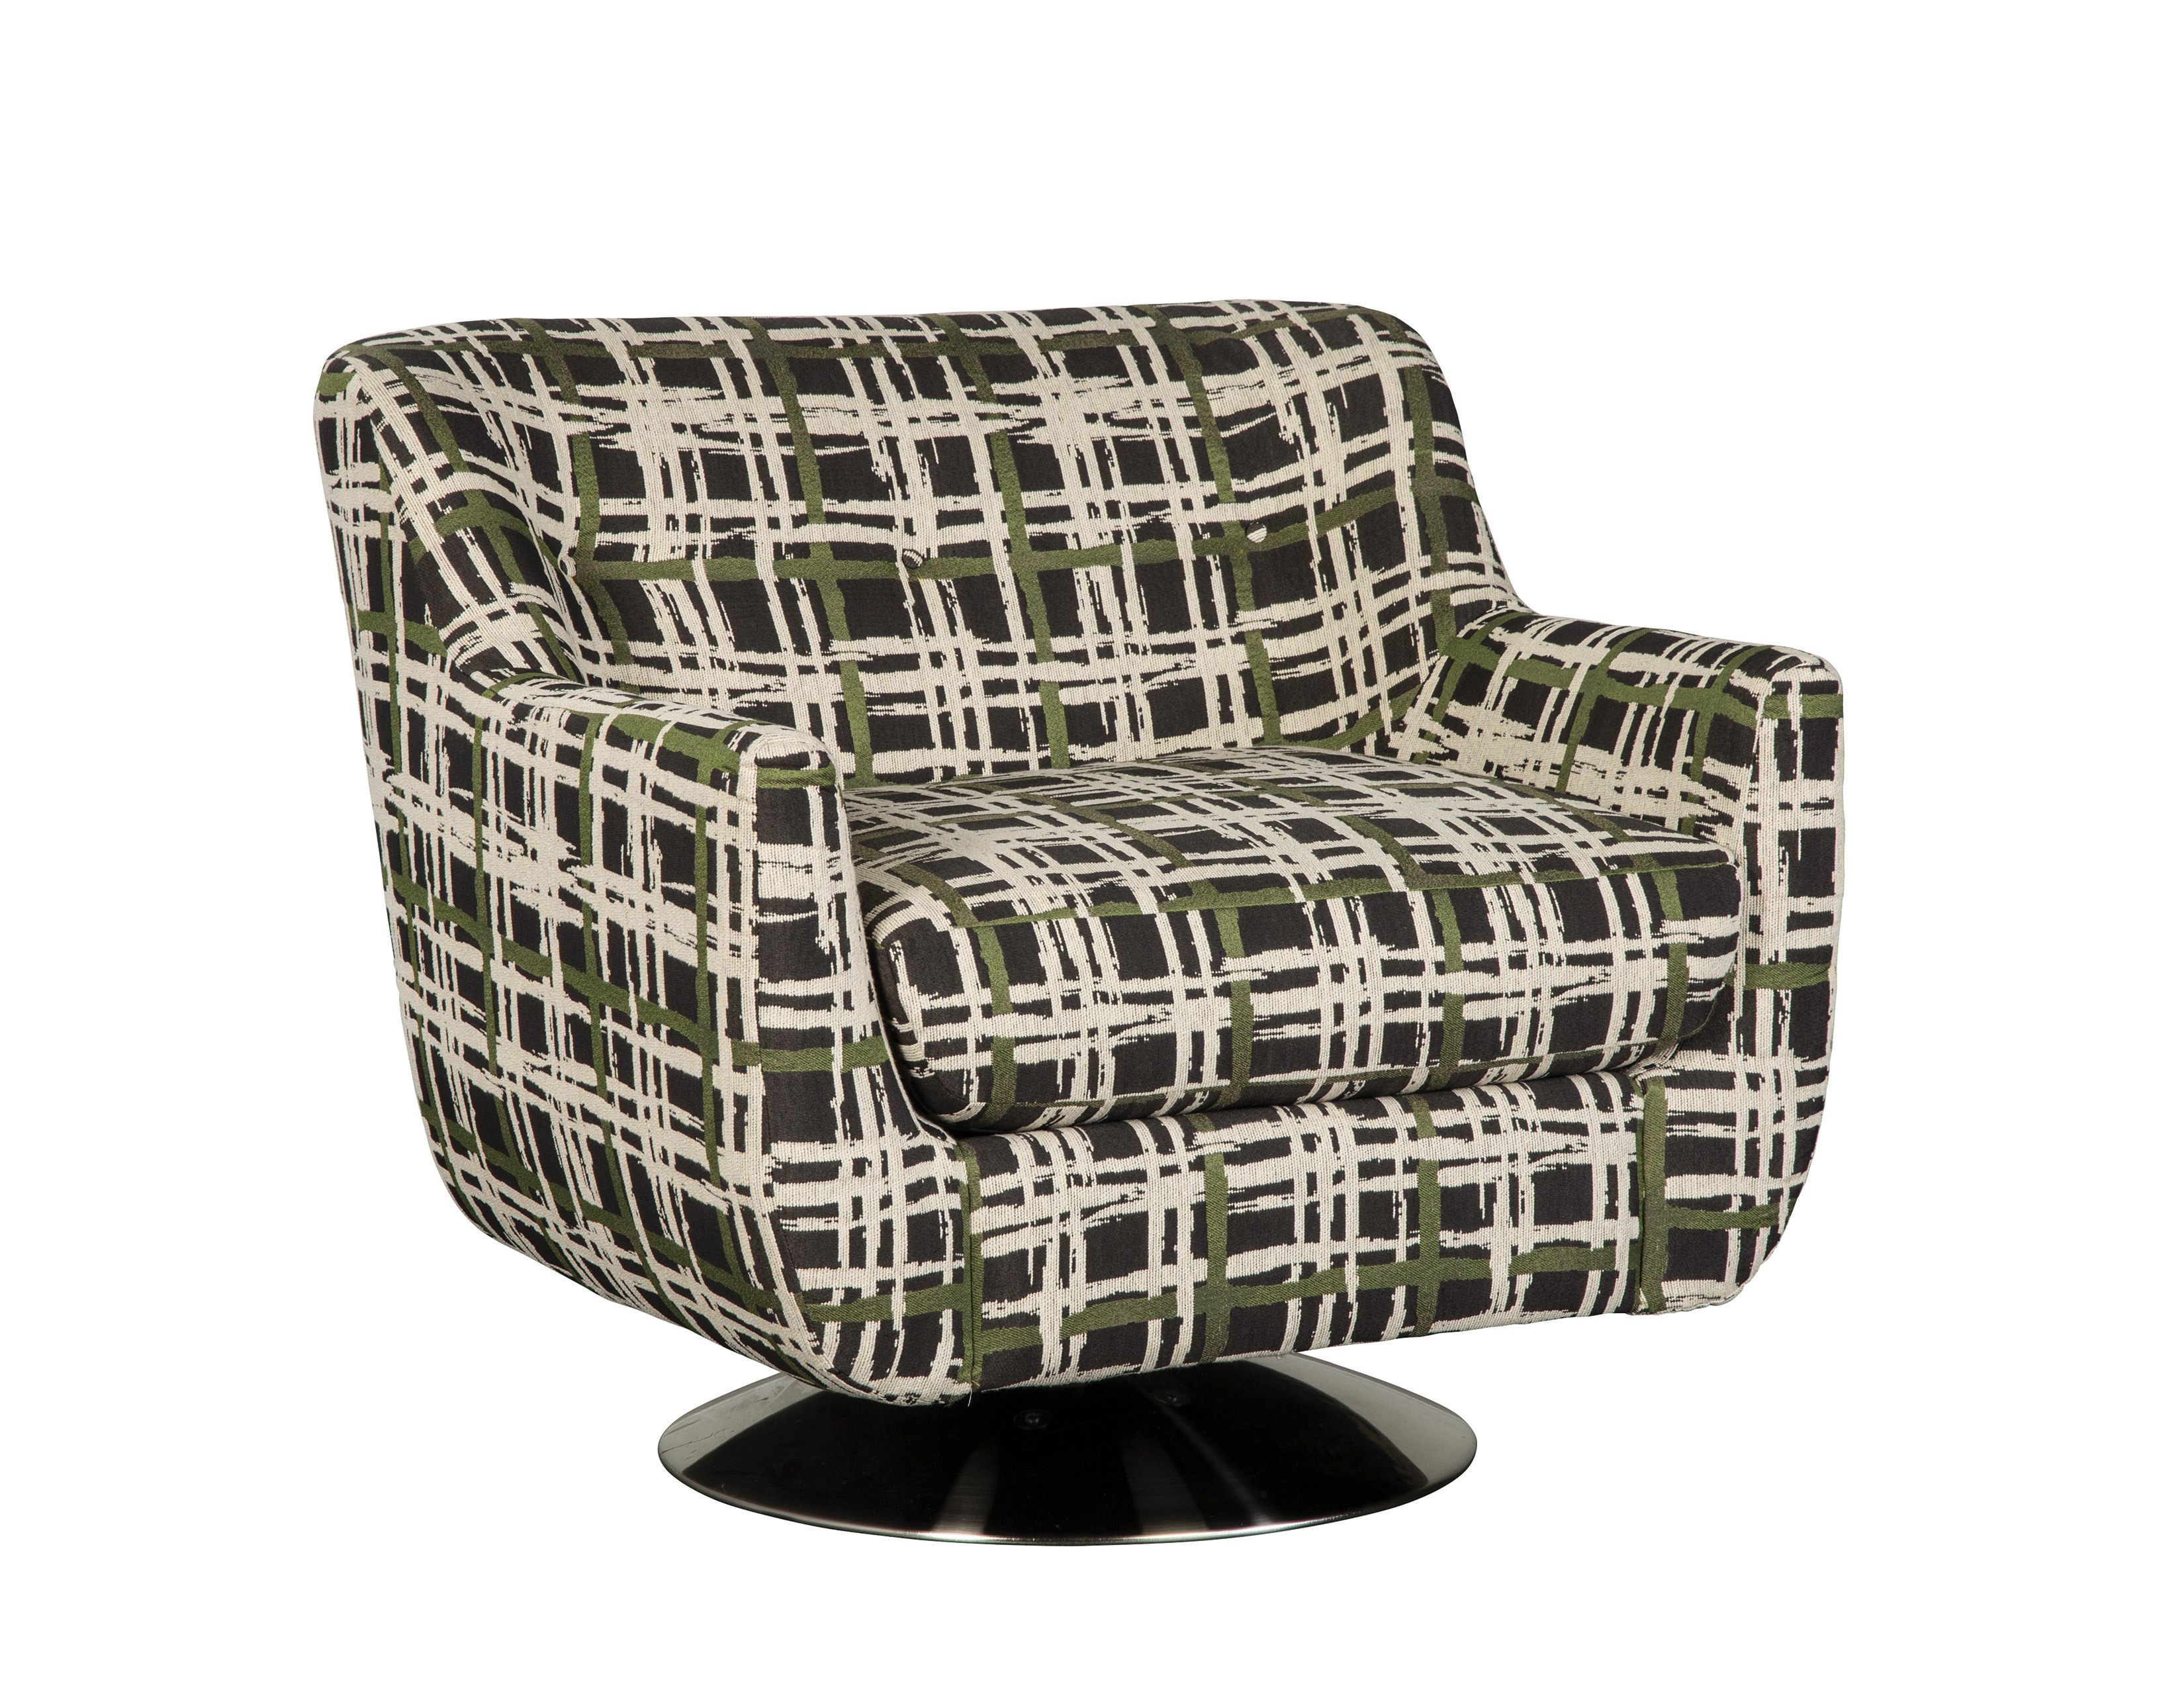 Azelea Chair Collection